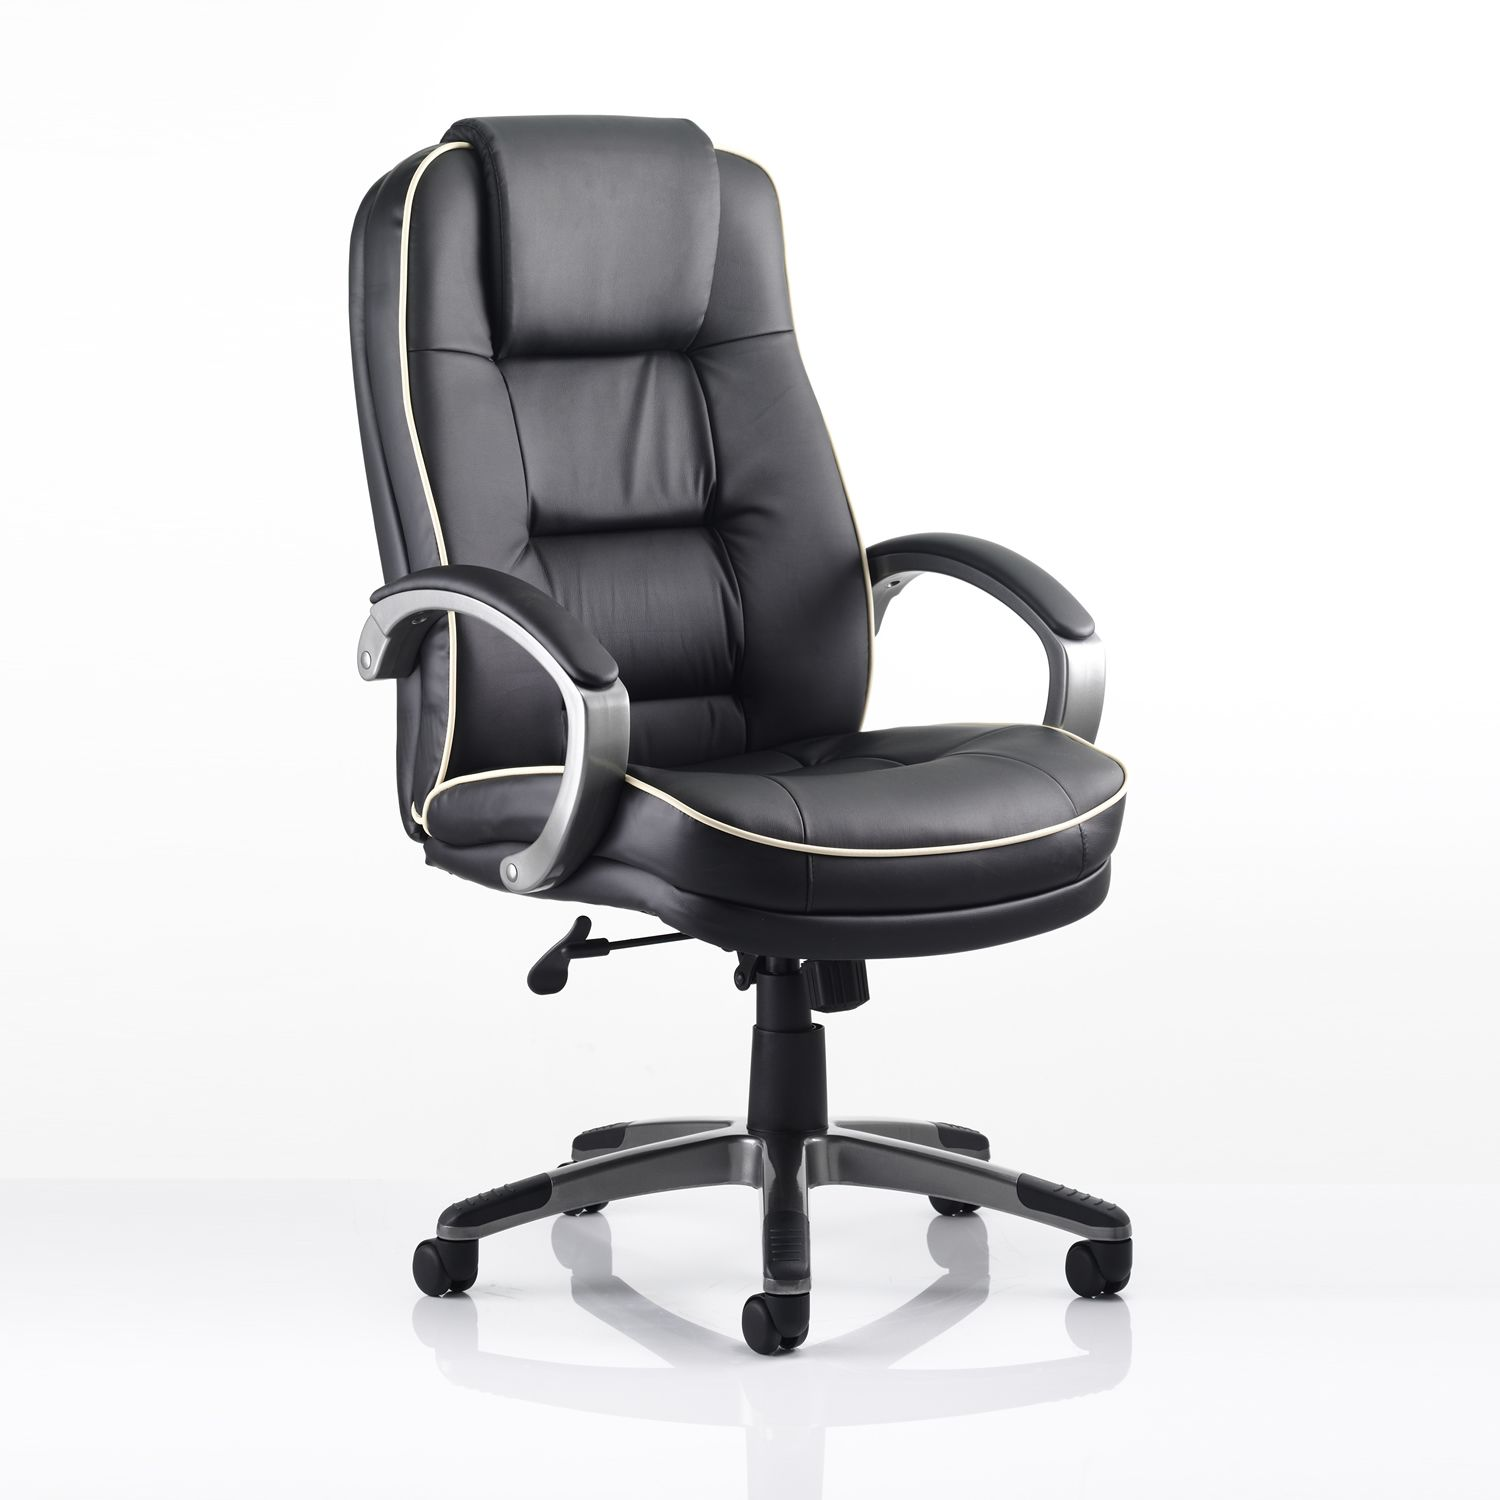 Office Chair Leather Awesome Epic Office Leather Chairs 86 About Remodel Home Remodel